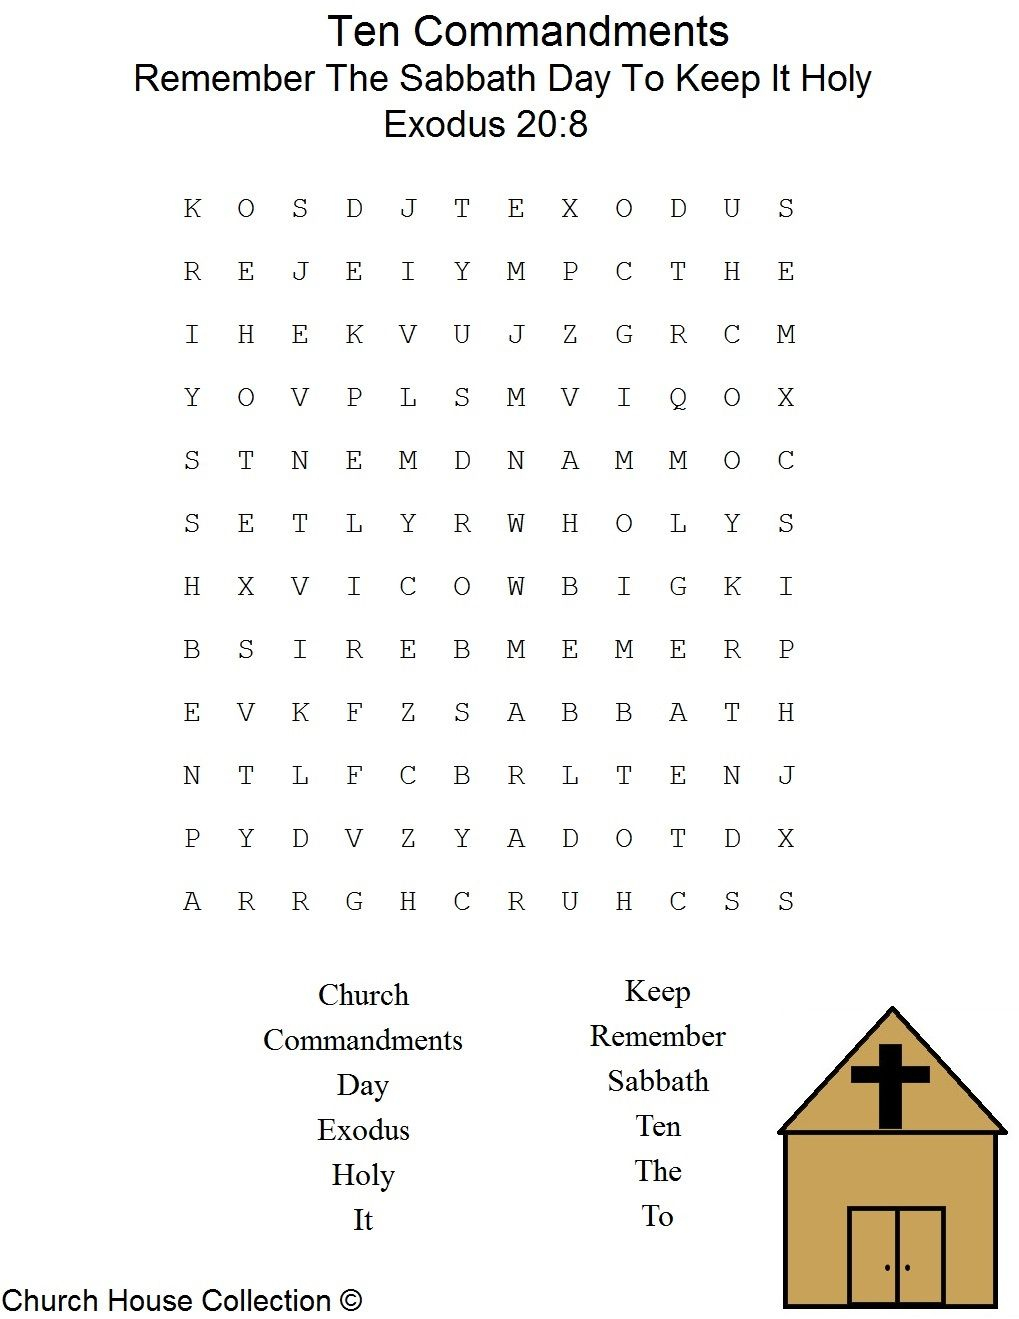 This Is A Free Printable Ten Commandments Word Find Puzzle For The - Printable Crossword Puzzles For Tweens